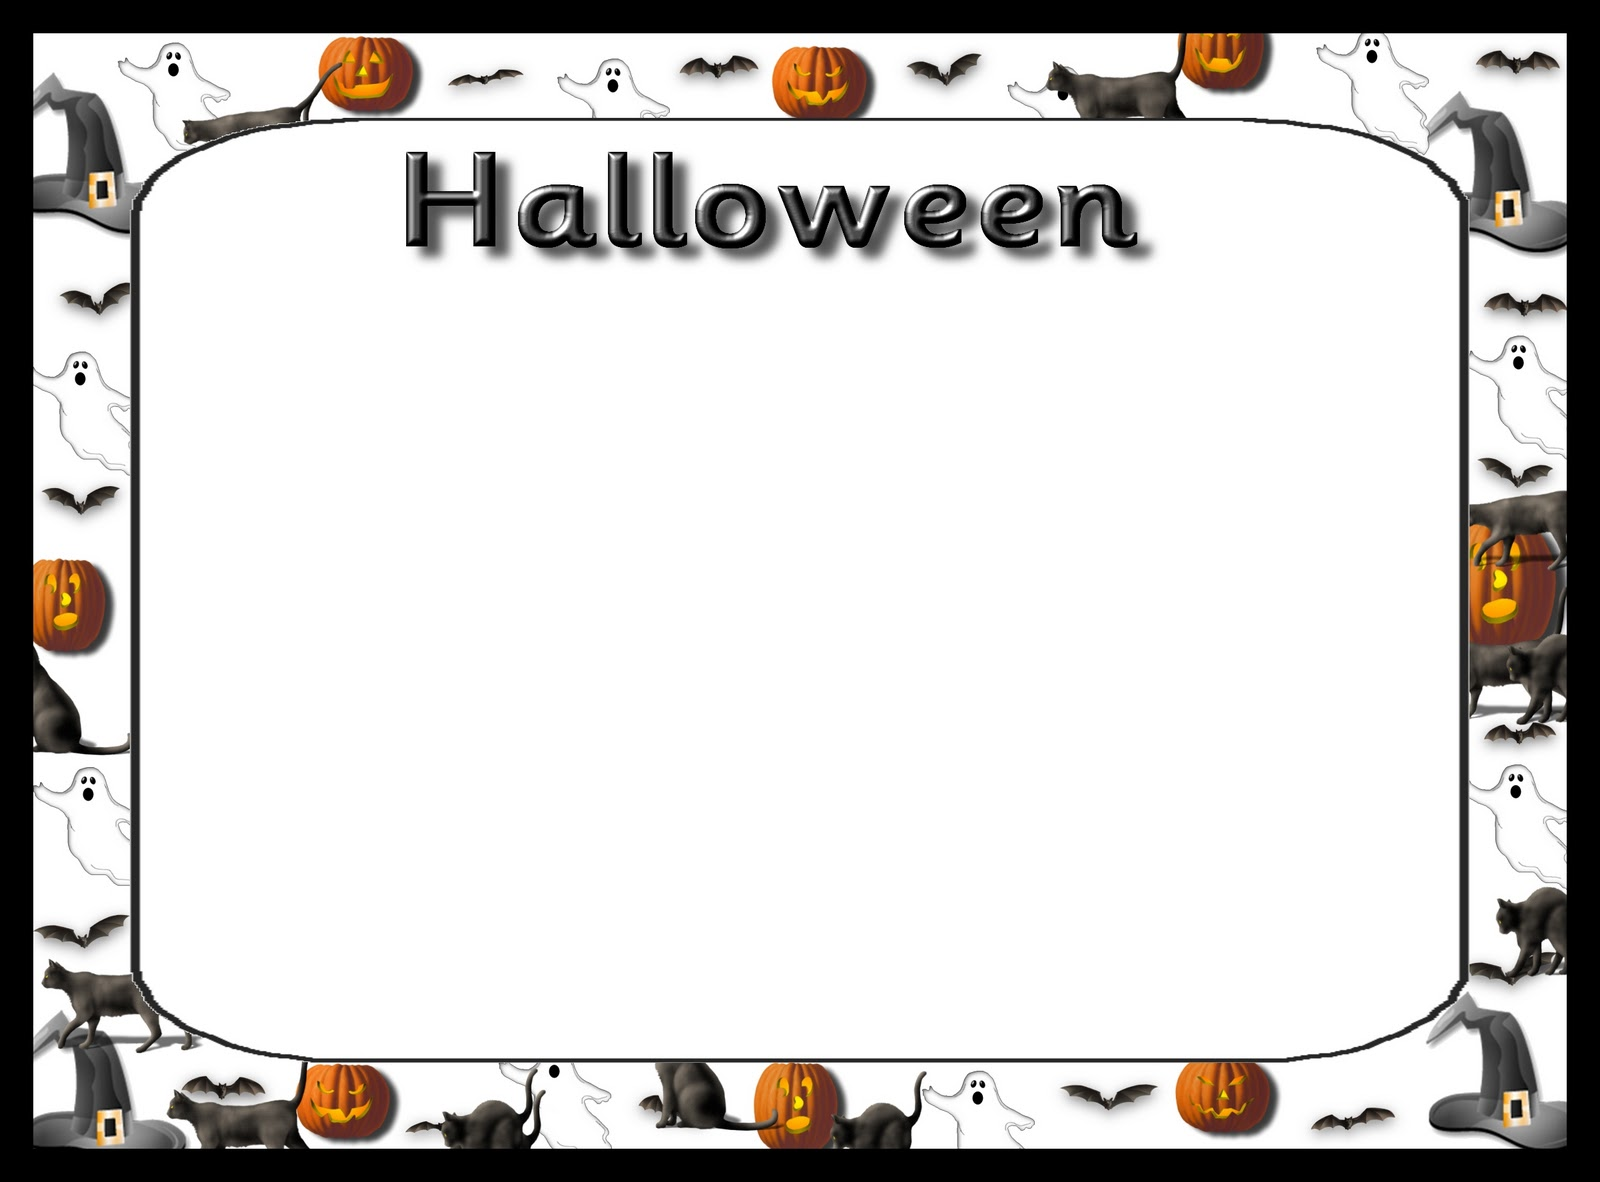 Debbies resource cupboard halloween decorated writing frame halloween decorated writing frame jeuxipadfo Choice Image